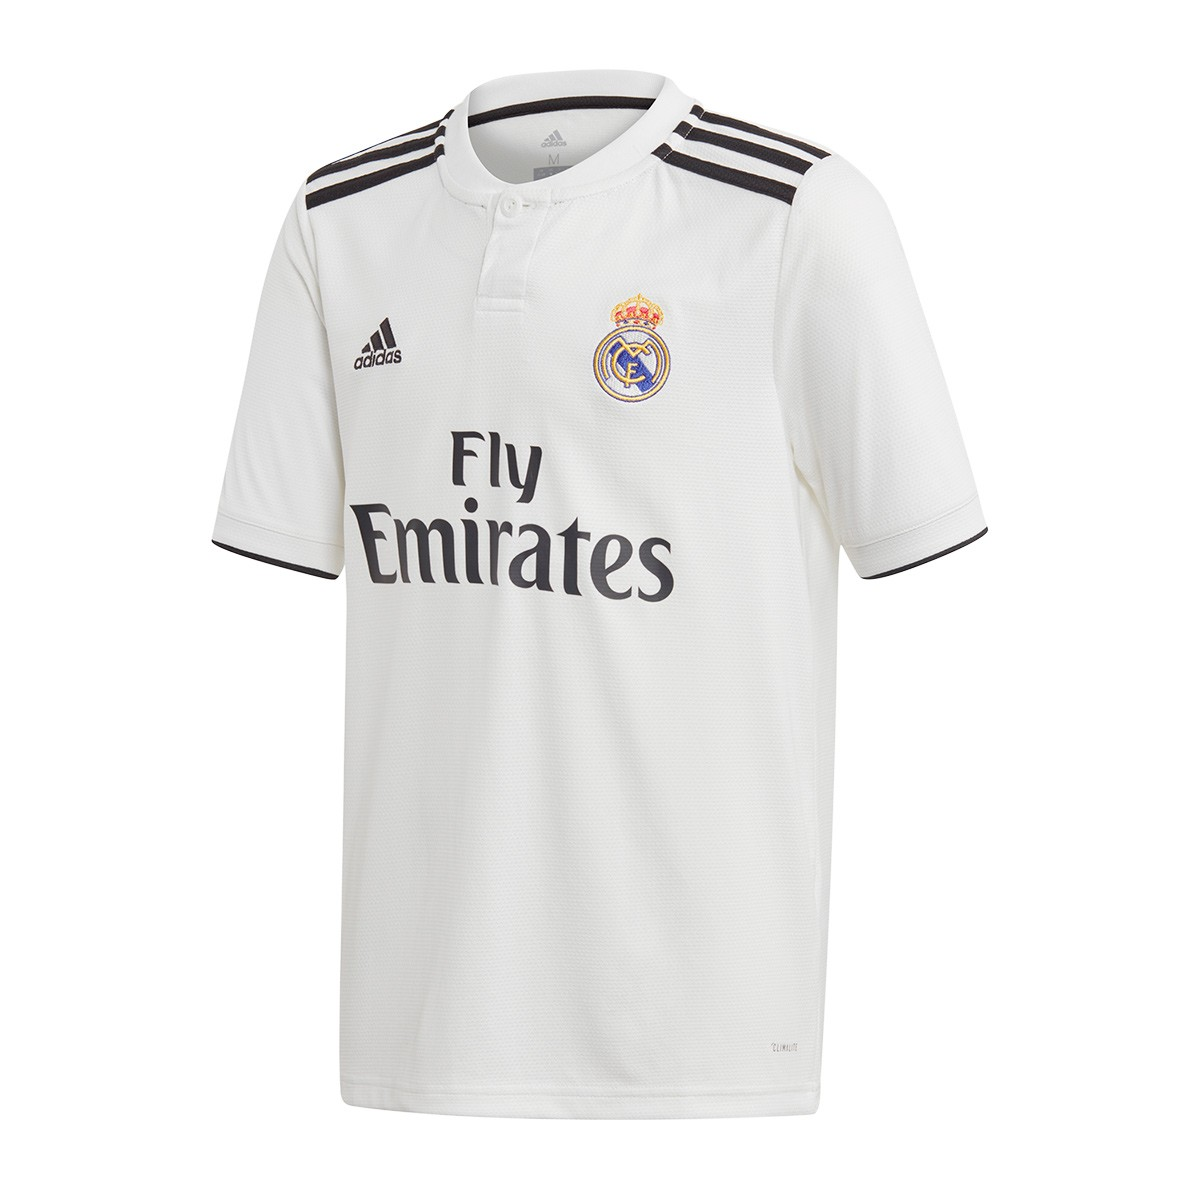 d8da0f2c01774 Jersey adidas Kids Real Madrid 2018-2019 Home White-black - Tienda ...